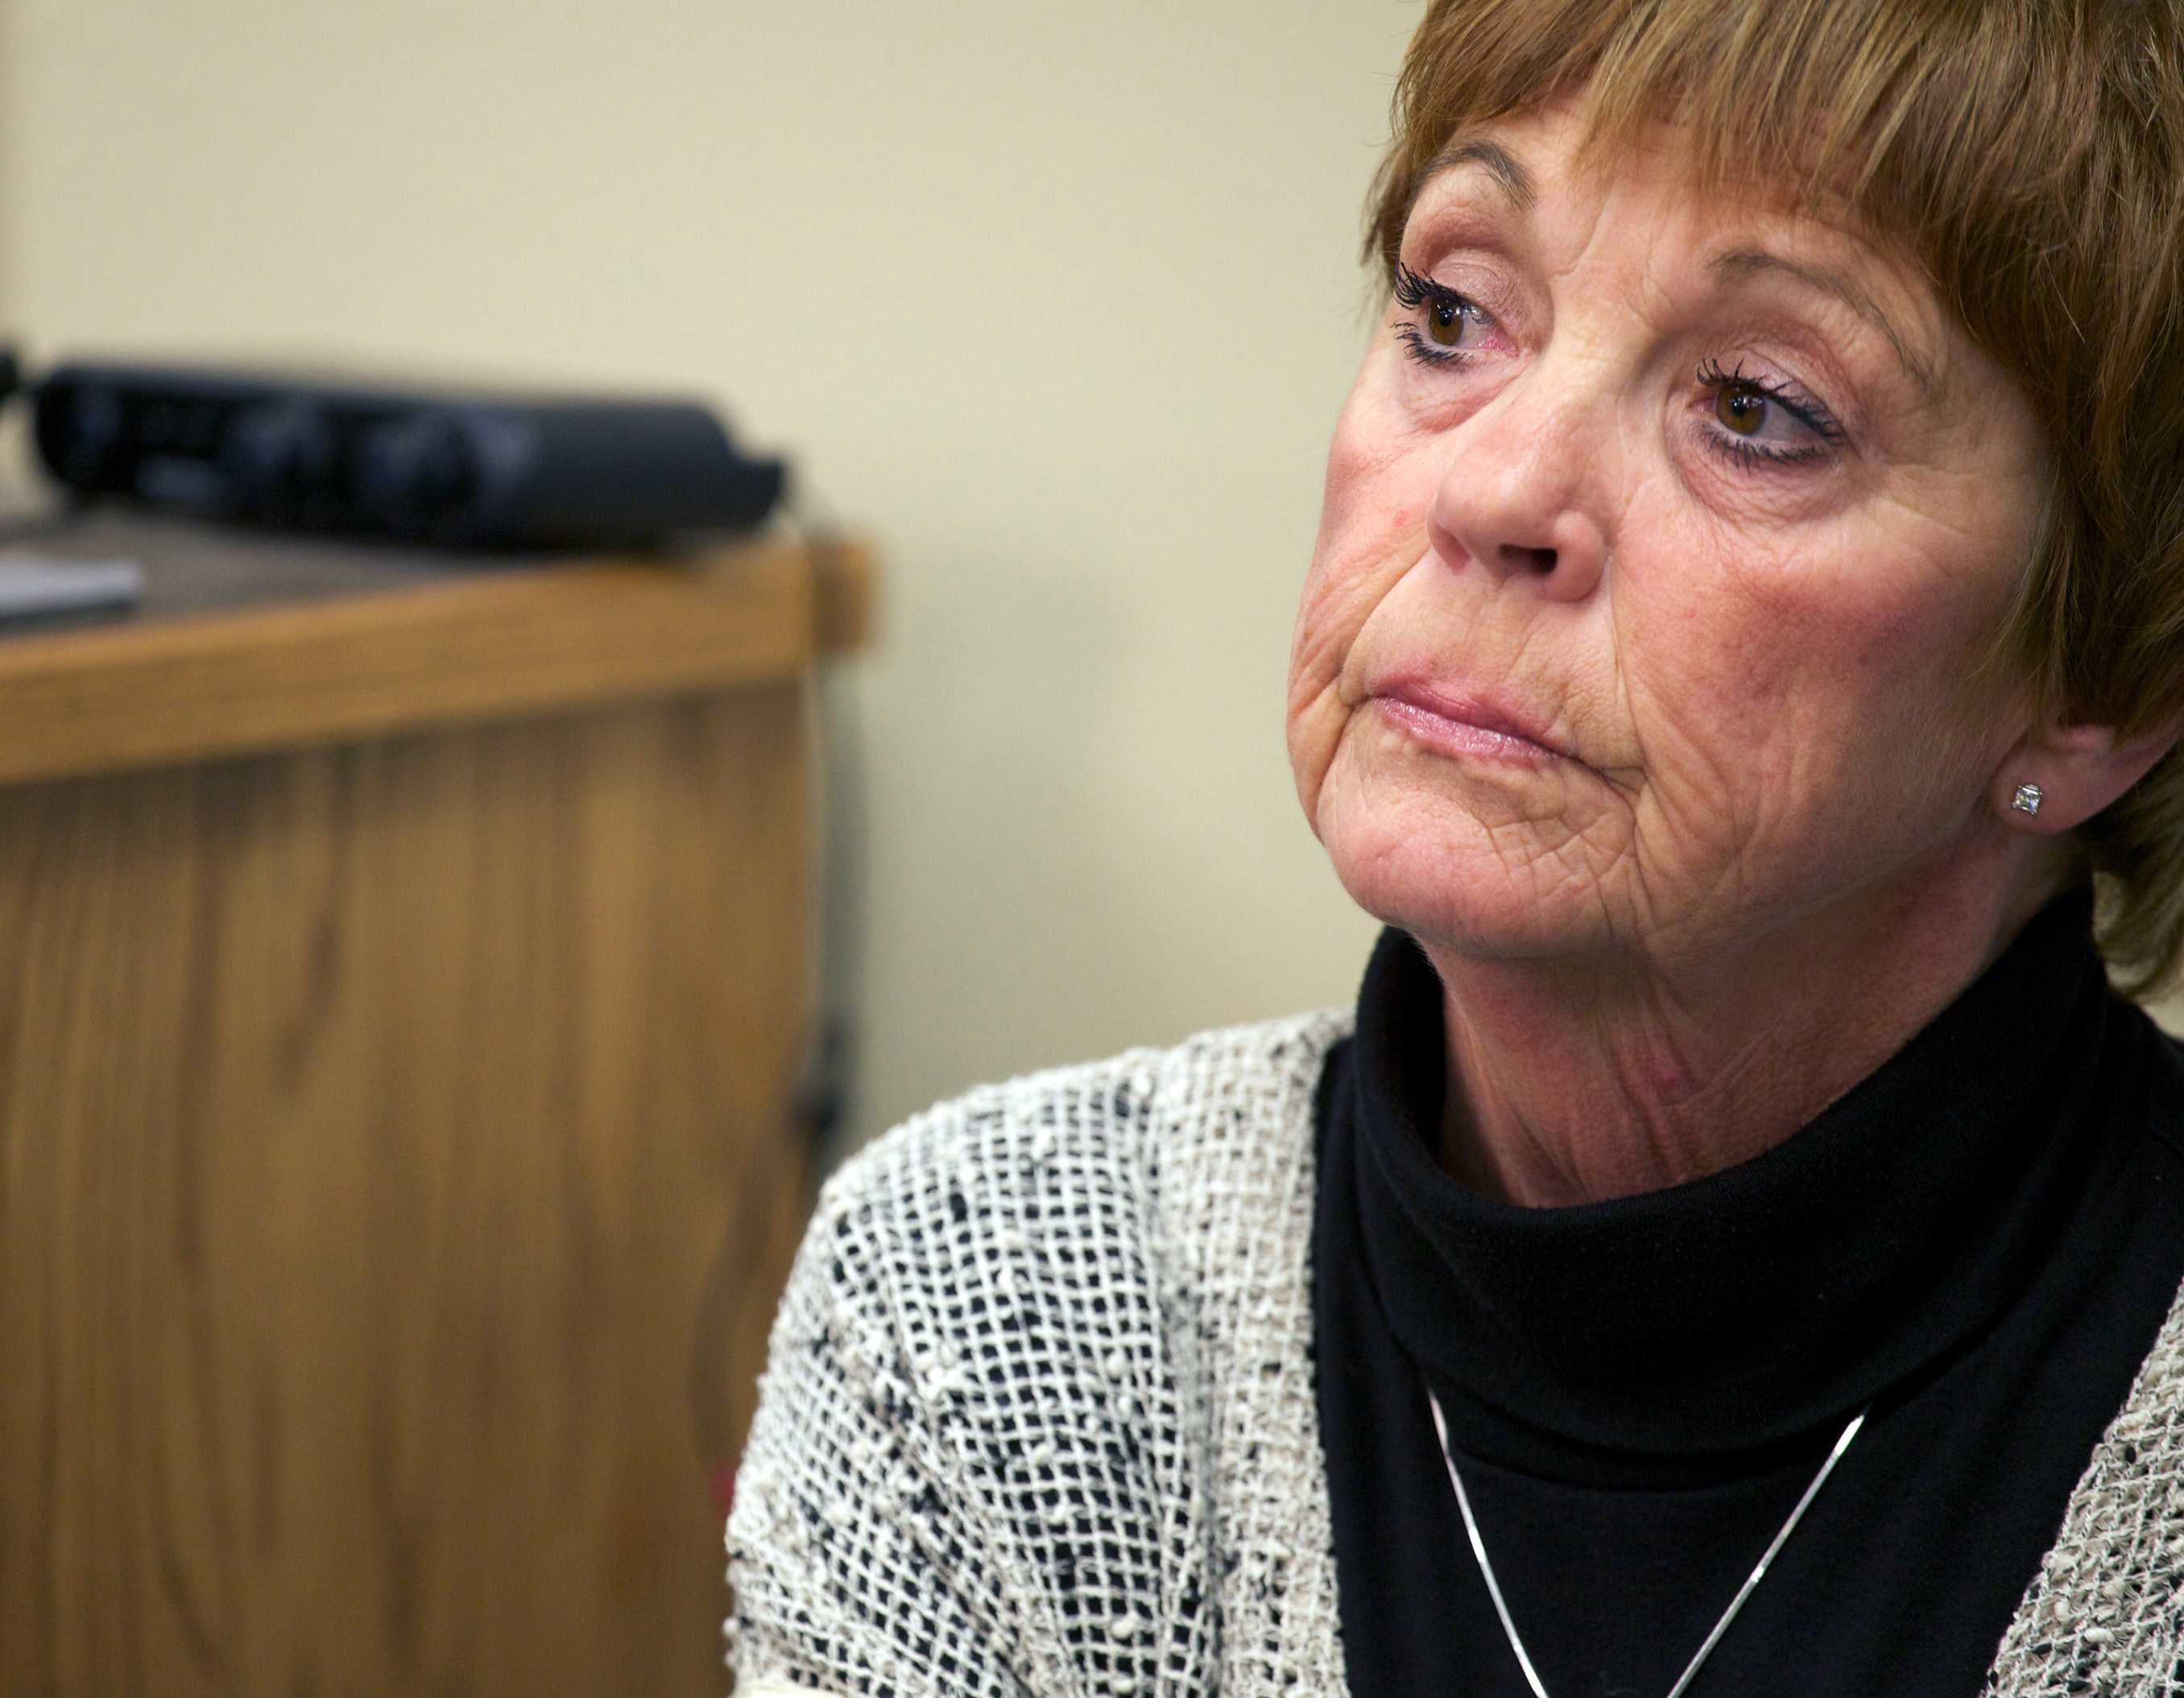 """Lynette Johnson, the wife of slain prison guard Ronald """"R.J."""" Johnson, reacts as media witnesses describe to reporters the final moments of murderer Eric Robert, her husband's killer, on Monday, Oct. 15, 2012, in Sioux Falls, S.D. Robert and another inmate, Rodney Berget, killed Ron Johnson in April 2011 during a failed prison escape attempt. The Monday execution marked the first execution in five years and the second in more than half a century for the state. (AP Photo/Amber Hunt)"""